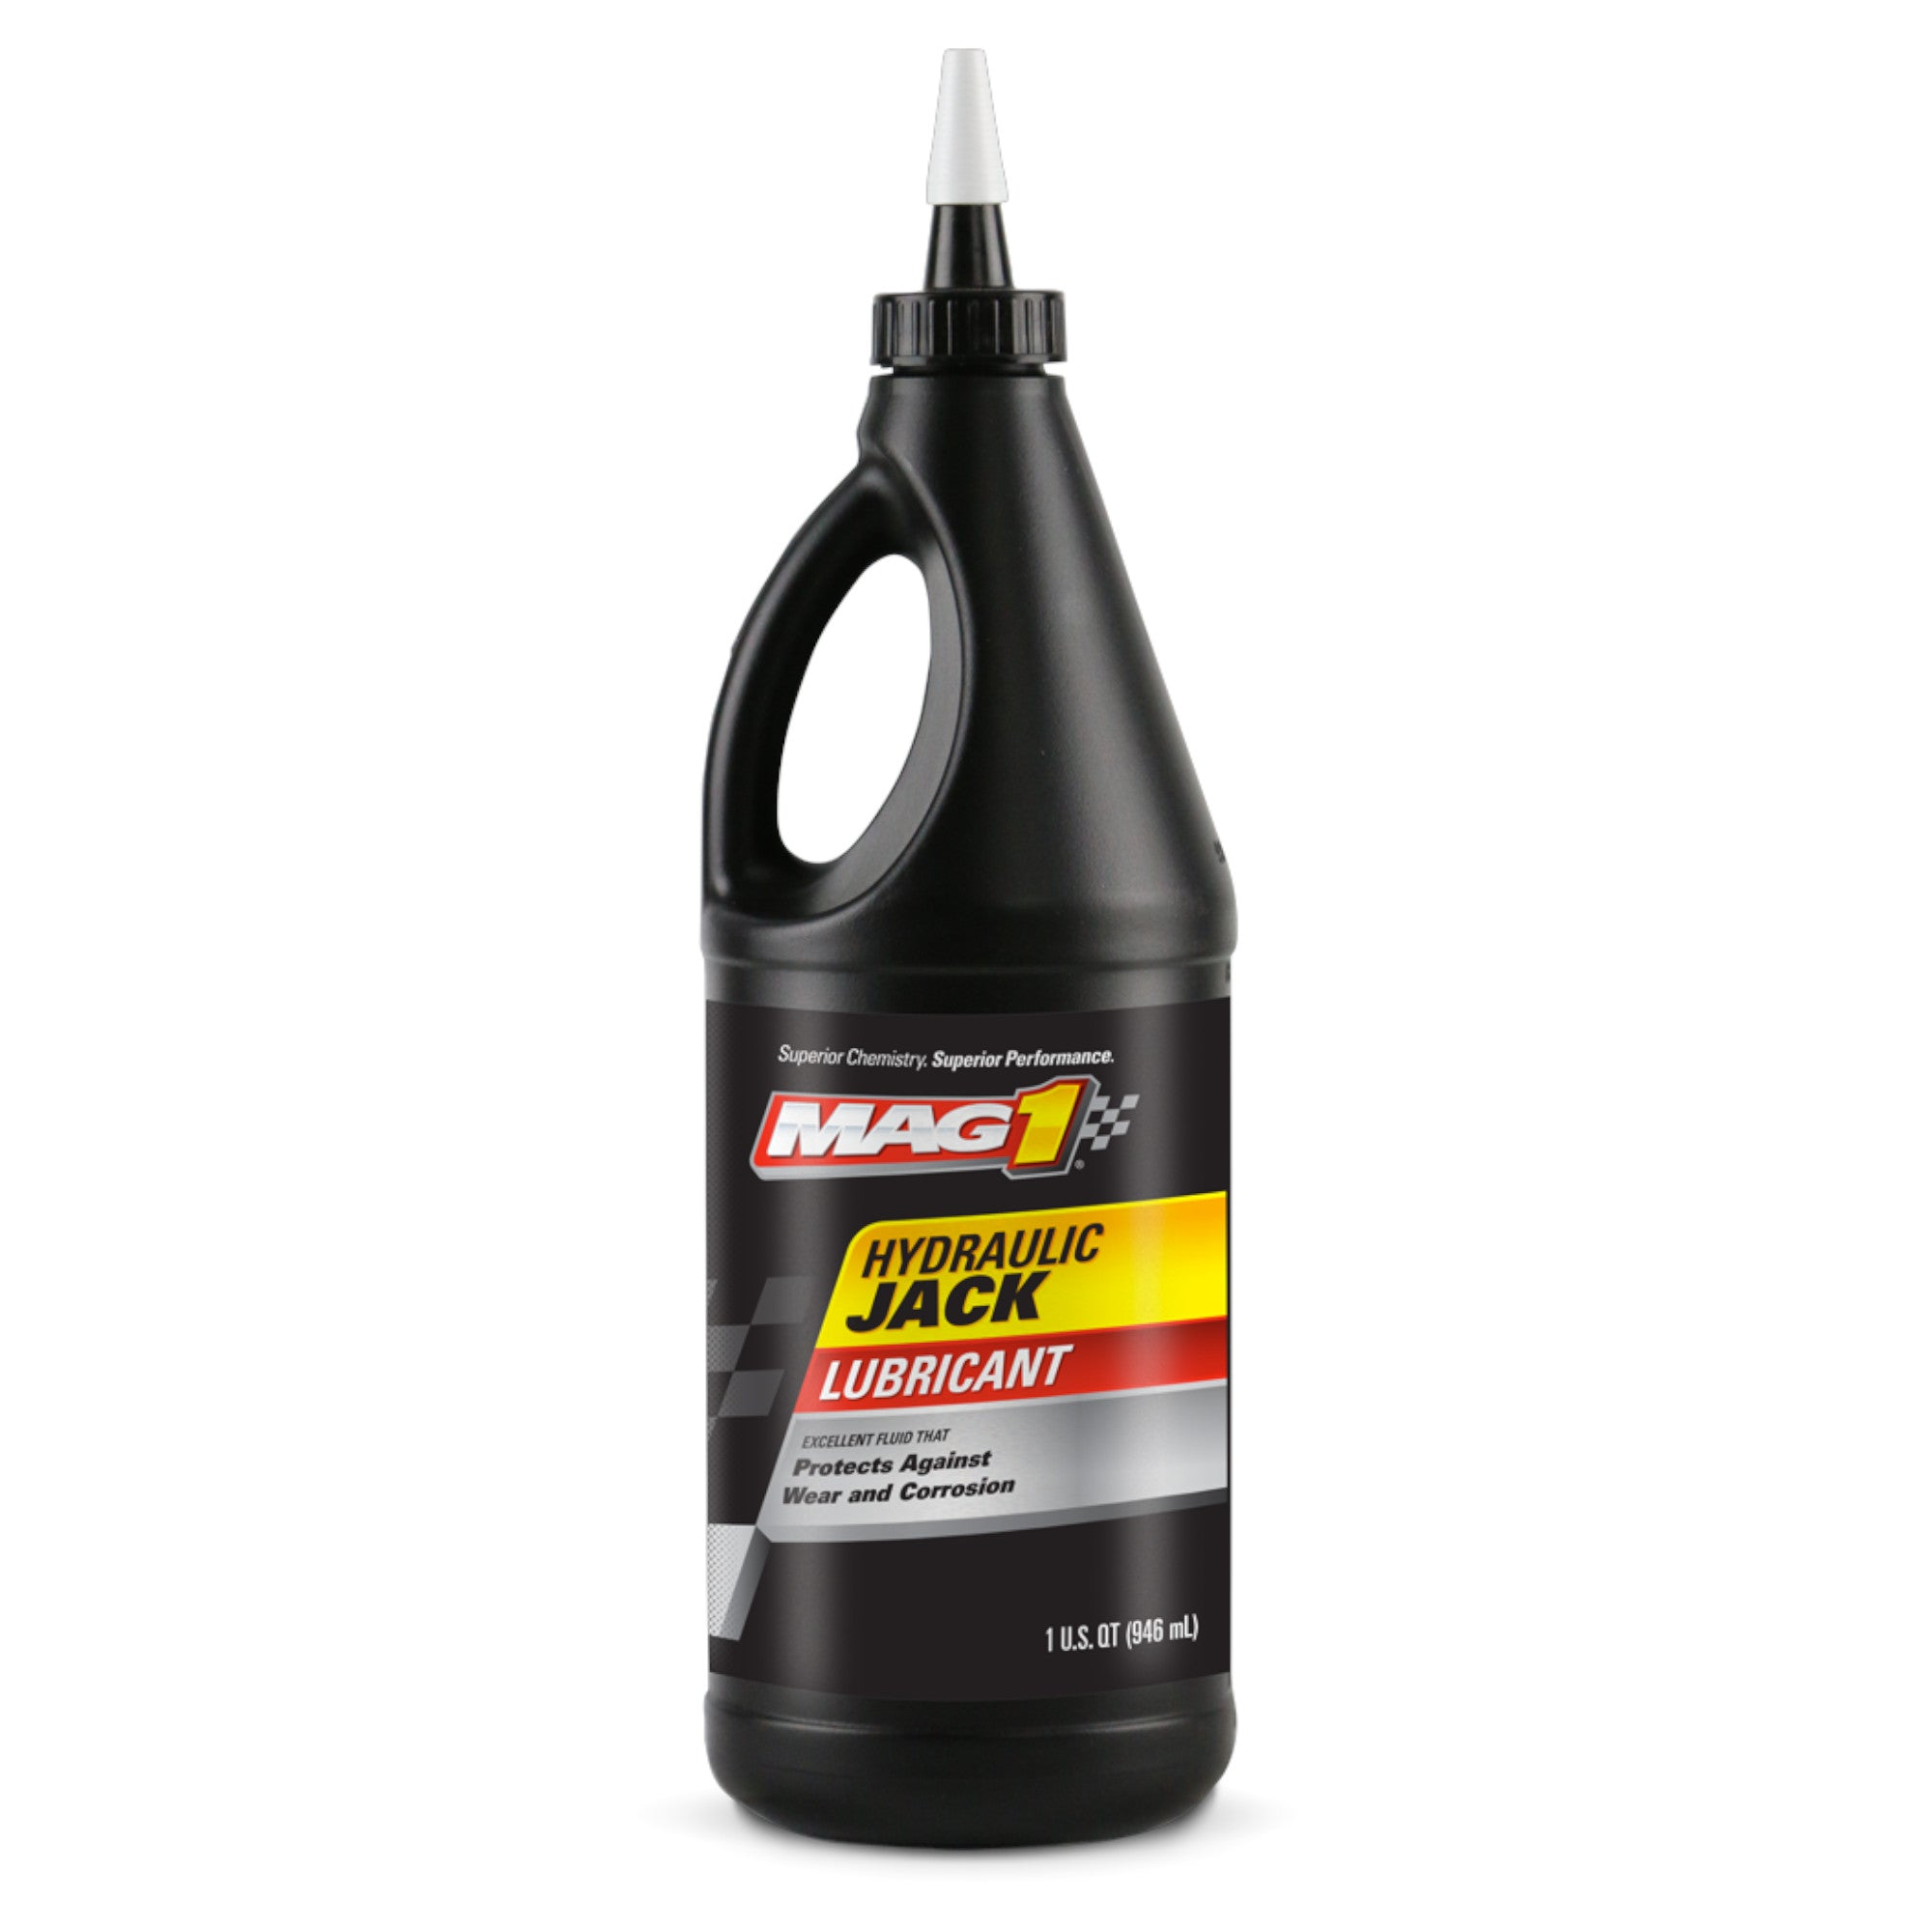 Mag 1 Hydraulic Jack Oil (1 Quart) (00925)